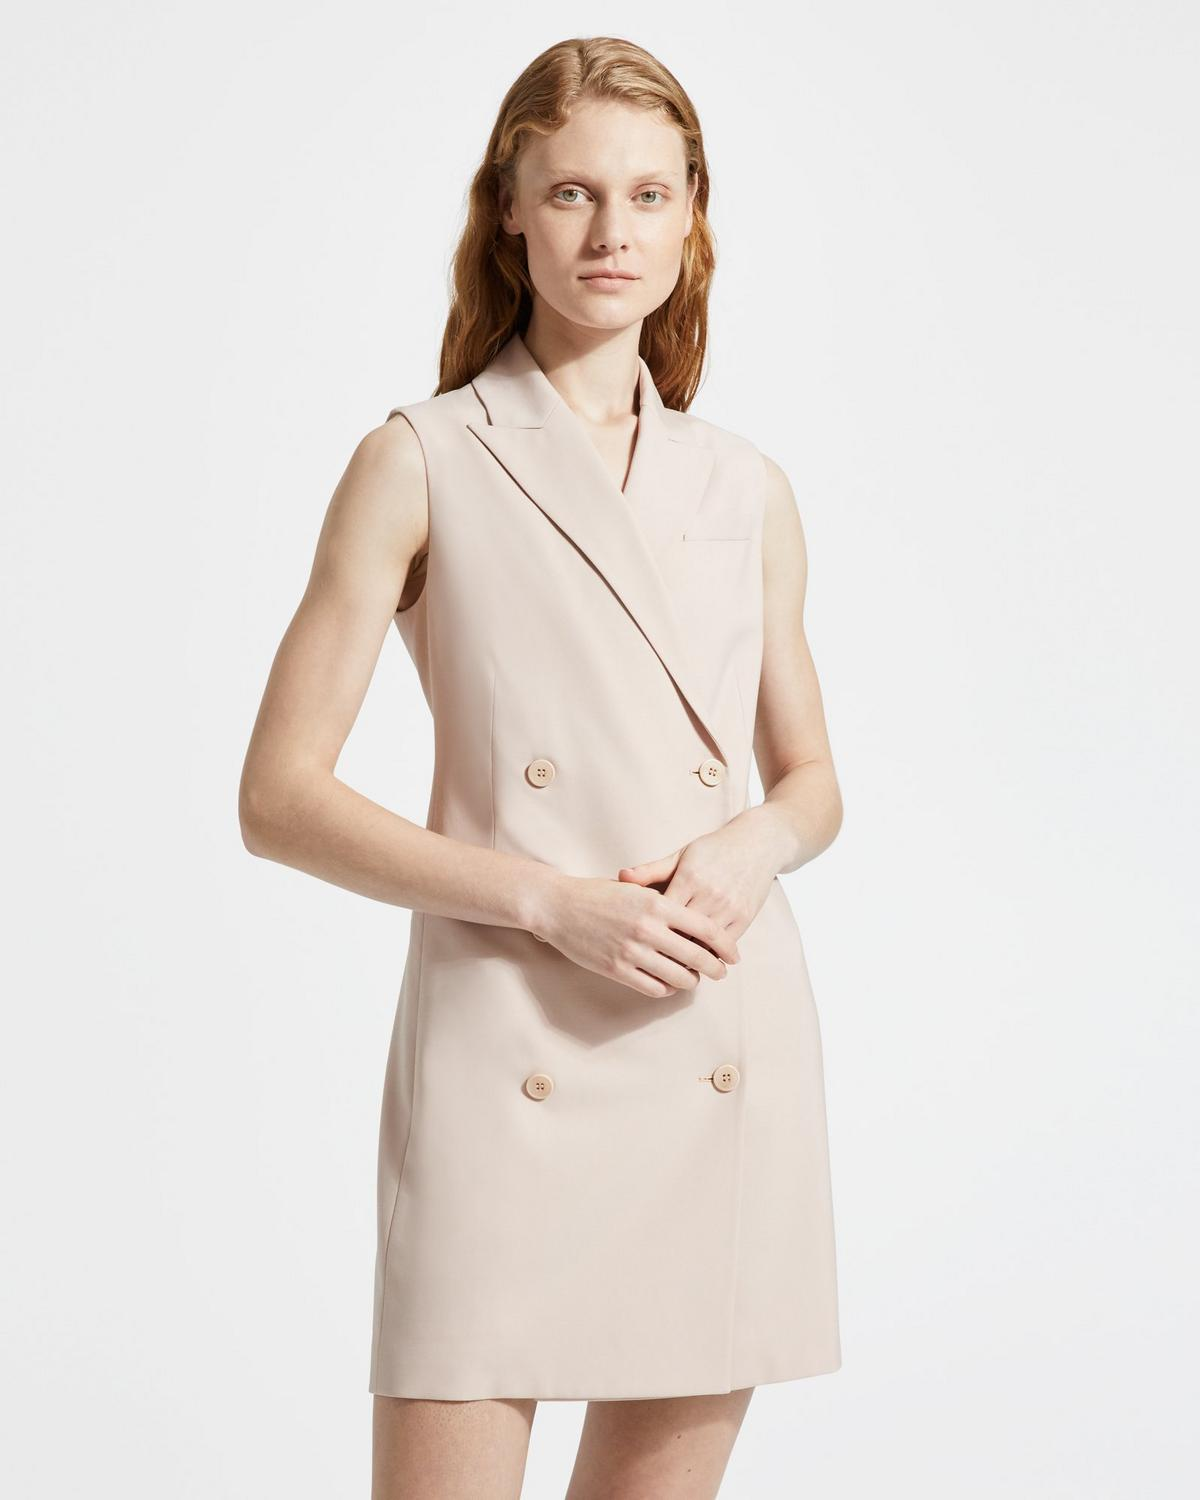 Good Wool Sleeveless Blazer Dress